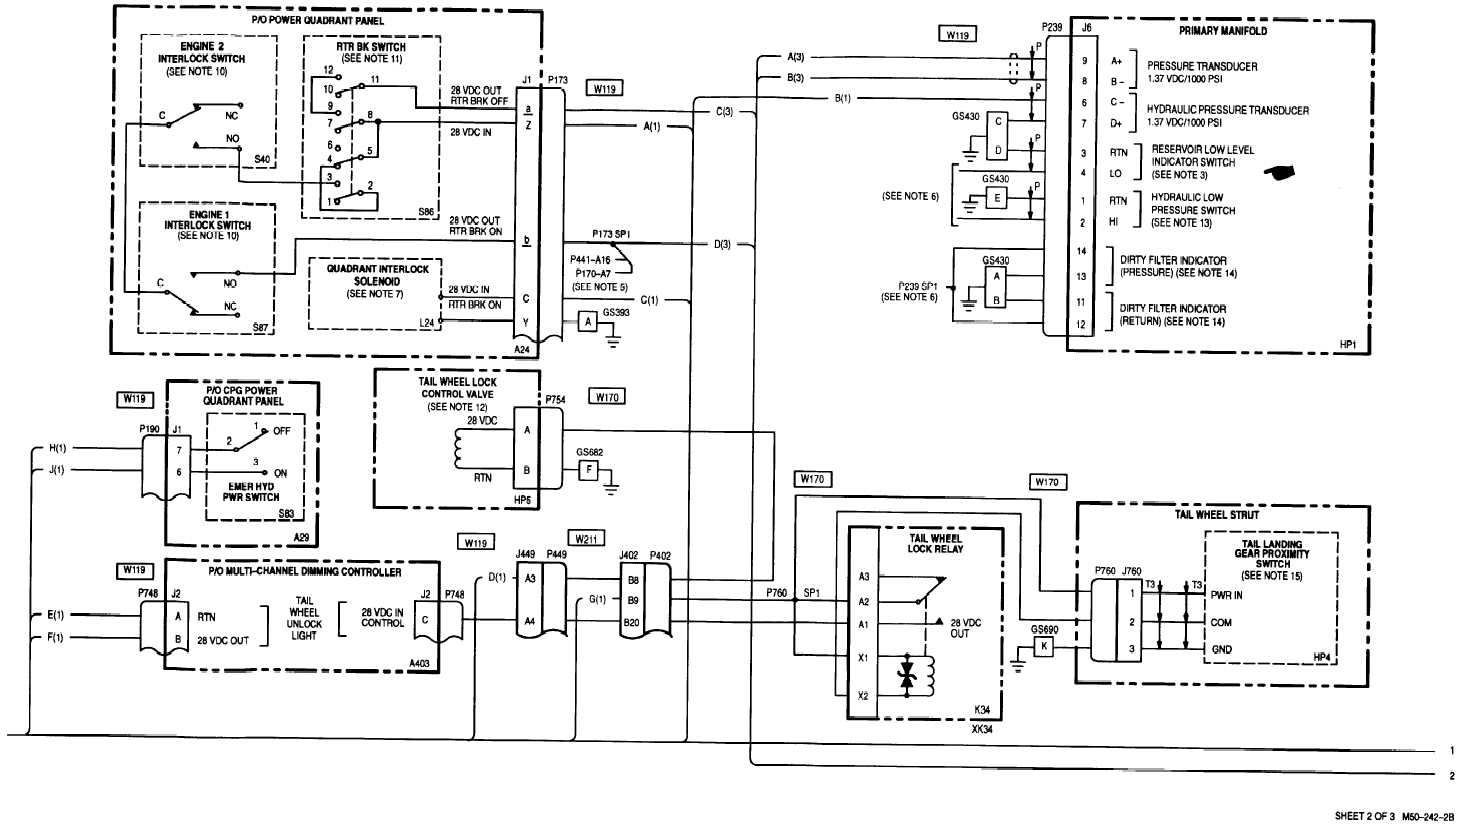 15 1 hydraulic wiring diagram cont tm 1 1520 238 t 10 461 rh apachehelicopter tpub com wiring diagram for hydraulic power pack wiring diagram for hydraulic dump trailer